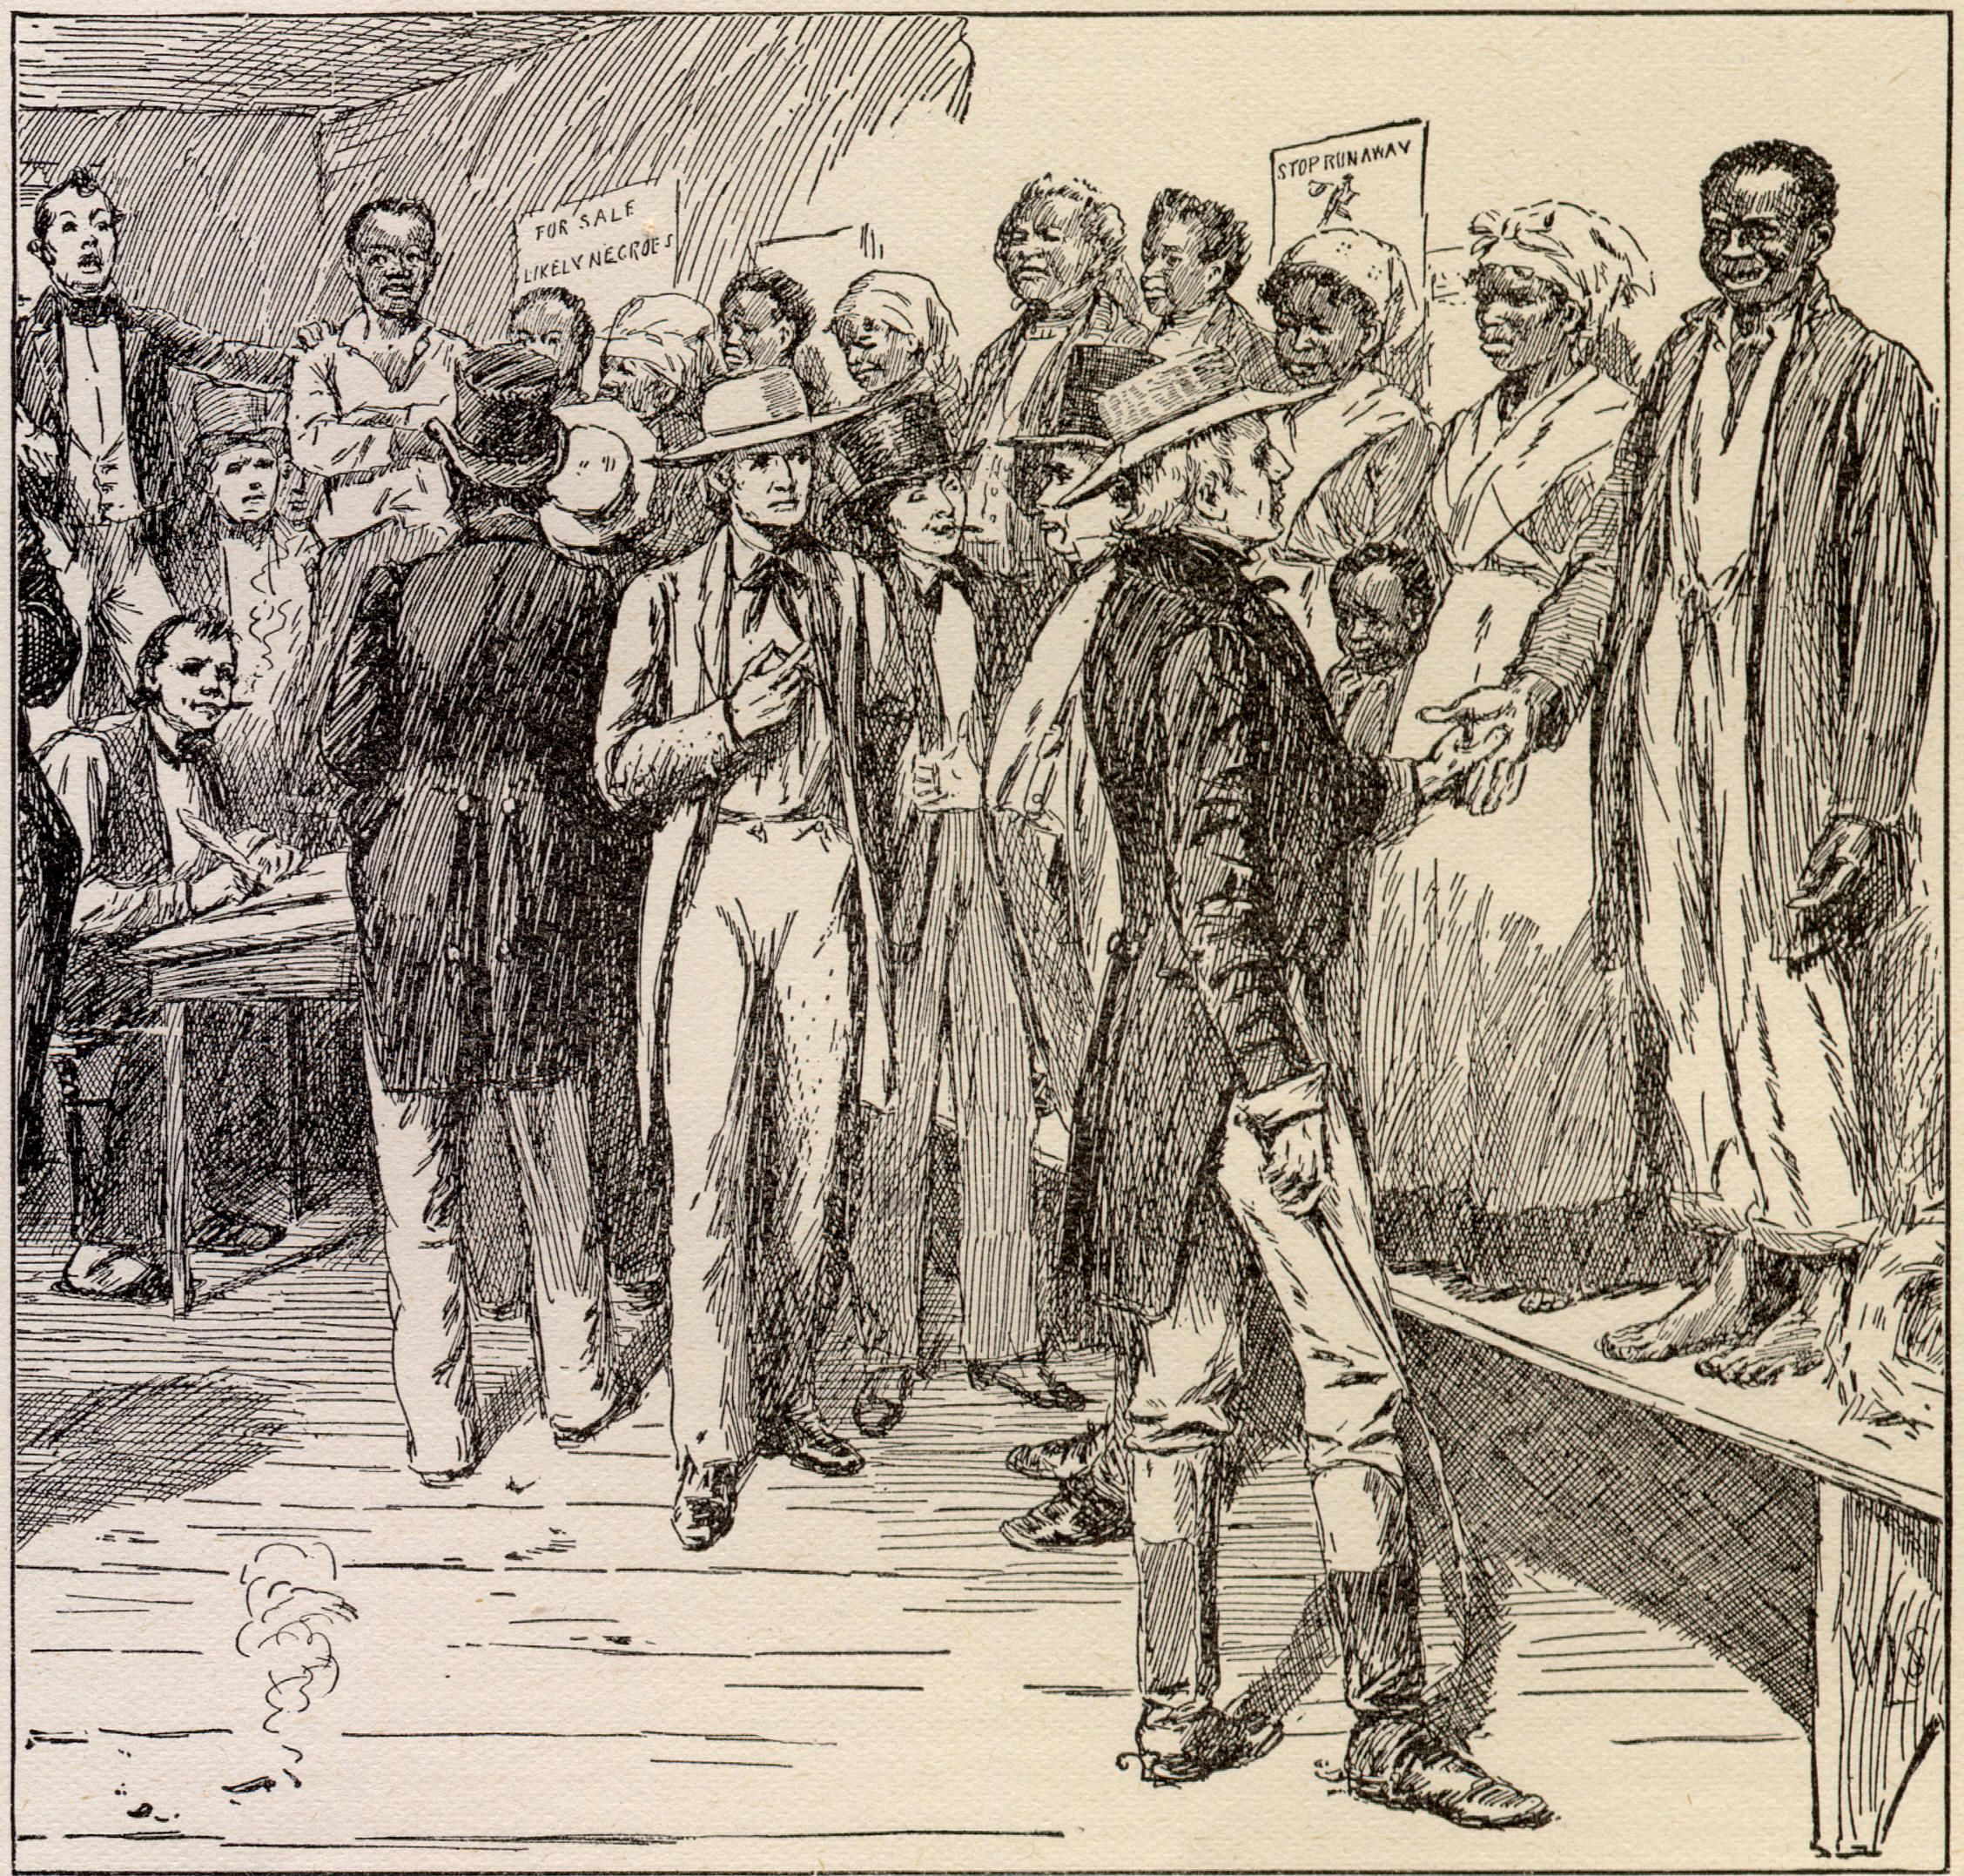 slavery in america essay The effects of slavery in america print reference if you are the original writer of this essay and no longer wish to have the essay published on the uk essays.